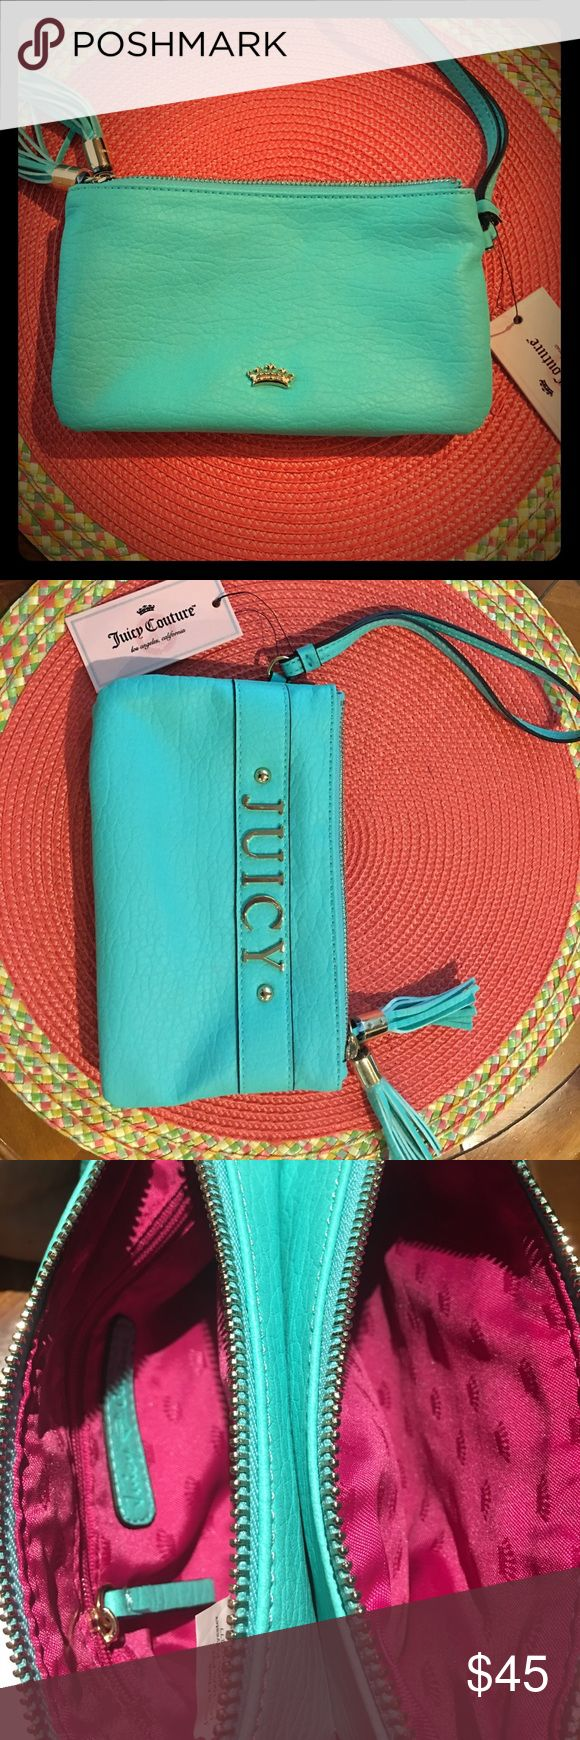 "SALE!!!  💕 Cute Juicy Couture Wristlet CUTE!!  Juicy Couture wristlet has gold colored crown on one side and ""JUICY"" spelled out on the other side.  Both zippered tassels also have ""Juicy Couture"" engraved on them.  Two main zippered compartments have cloth interior.  One of them had a good sized zippered pocket.   Dimensions are about 8.5"" X 5."" Juicy Couture Bags Clutches & Wristlets"